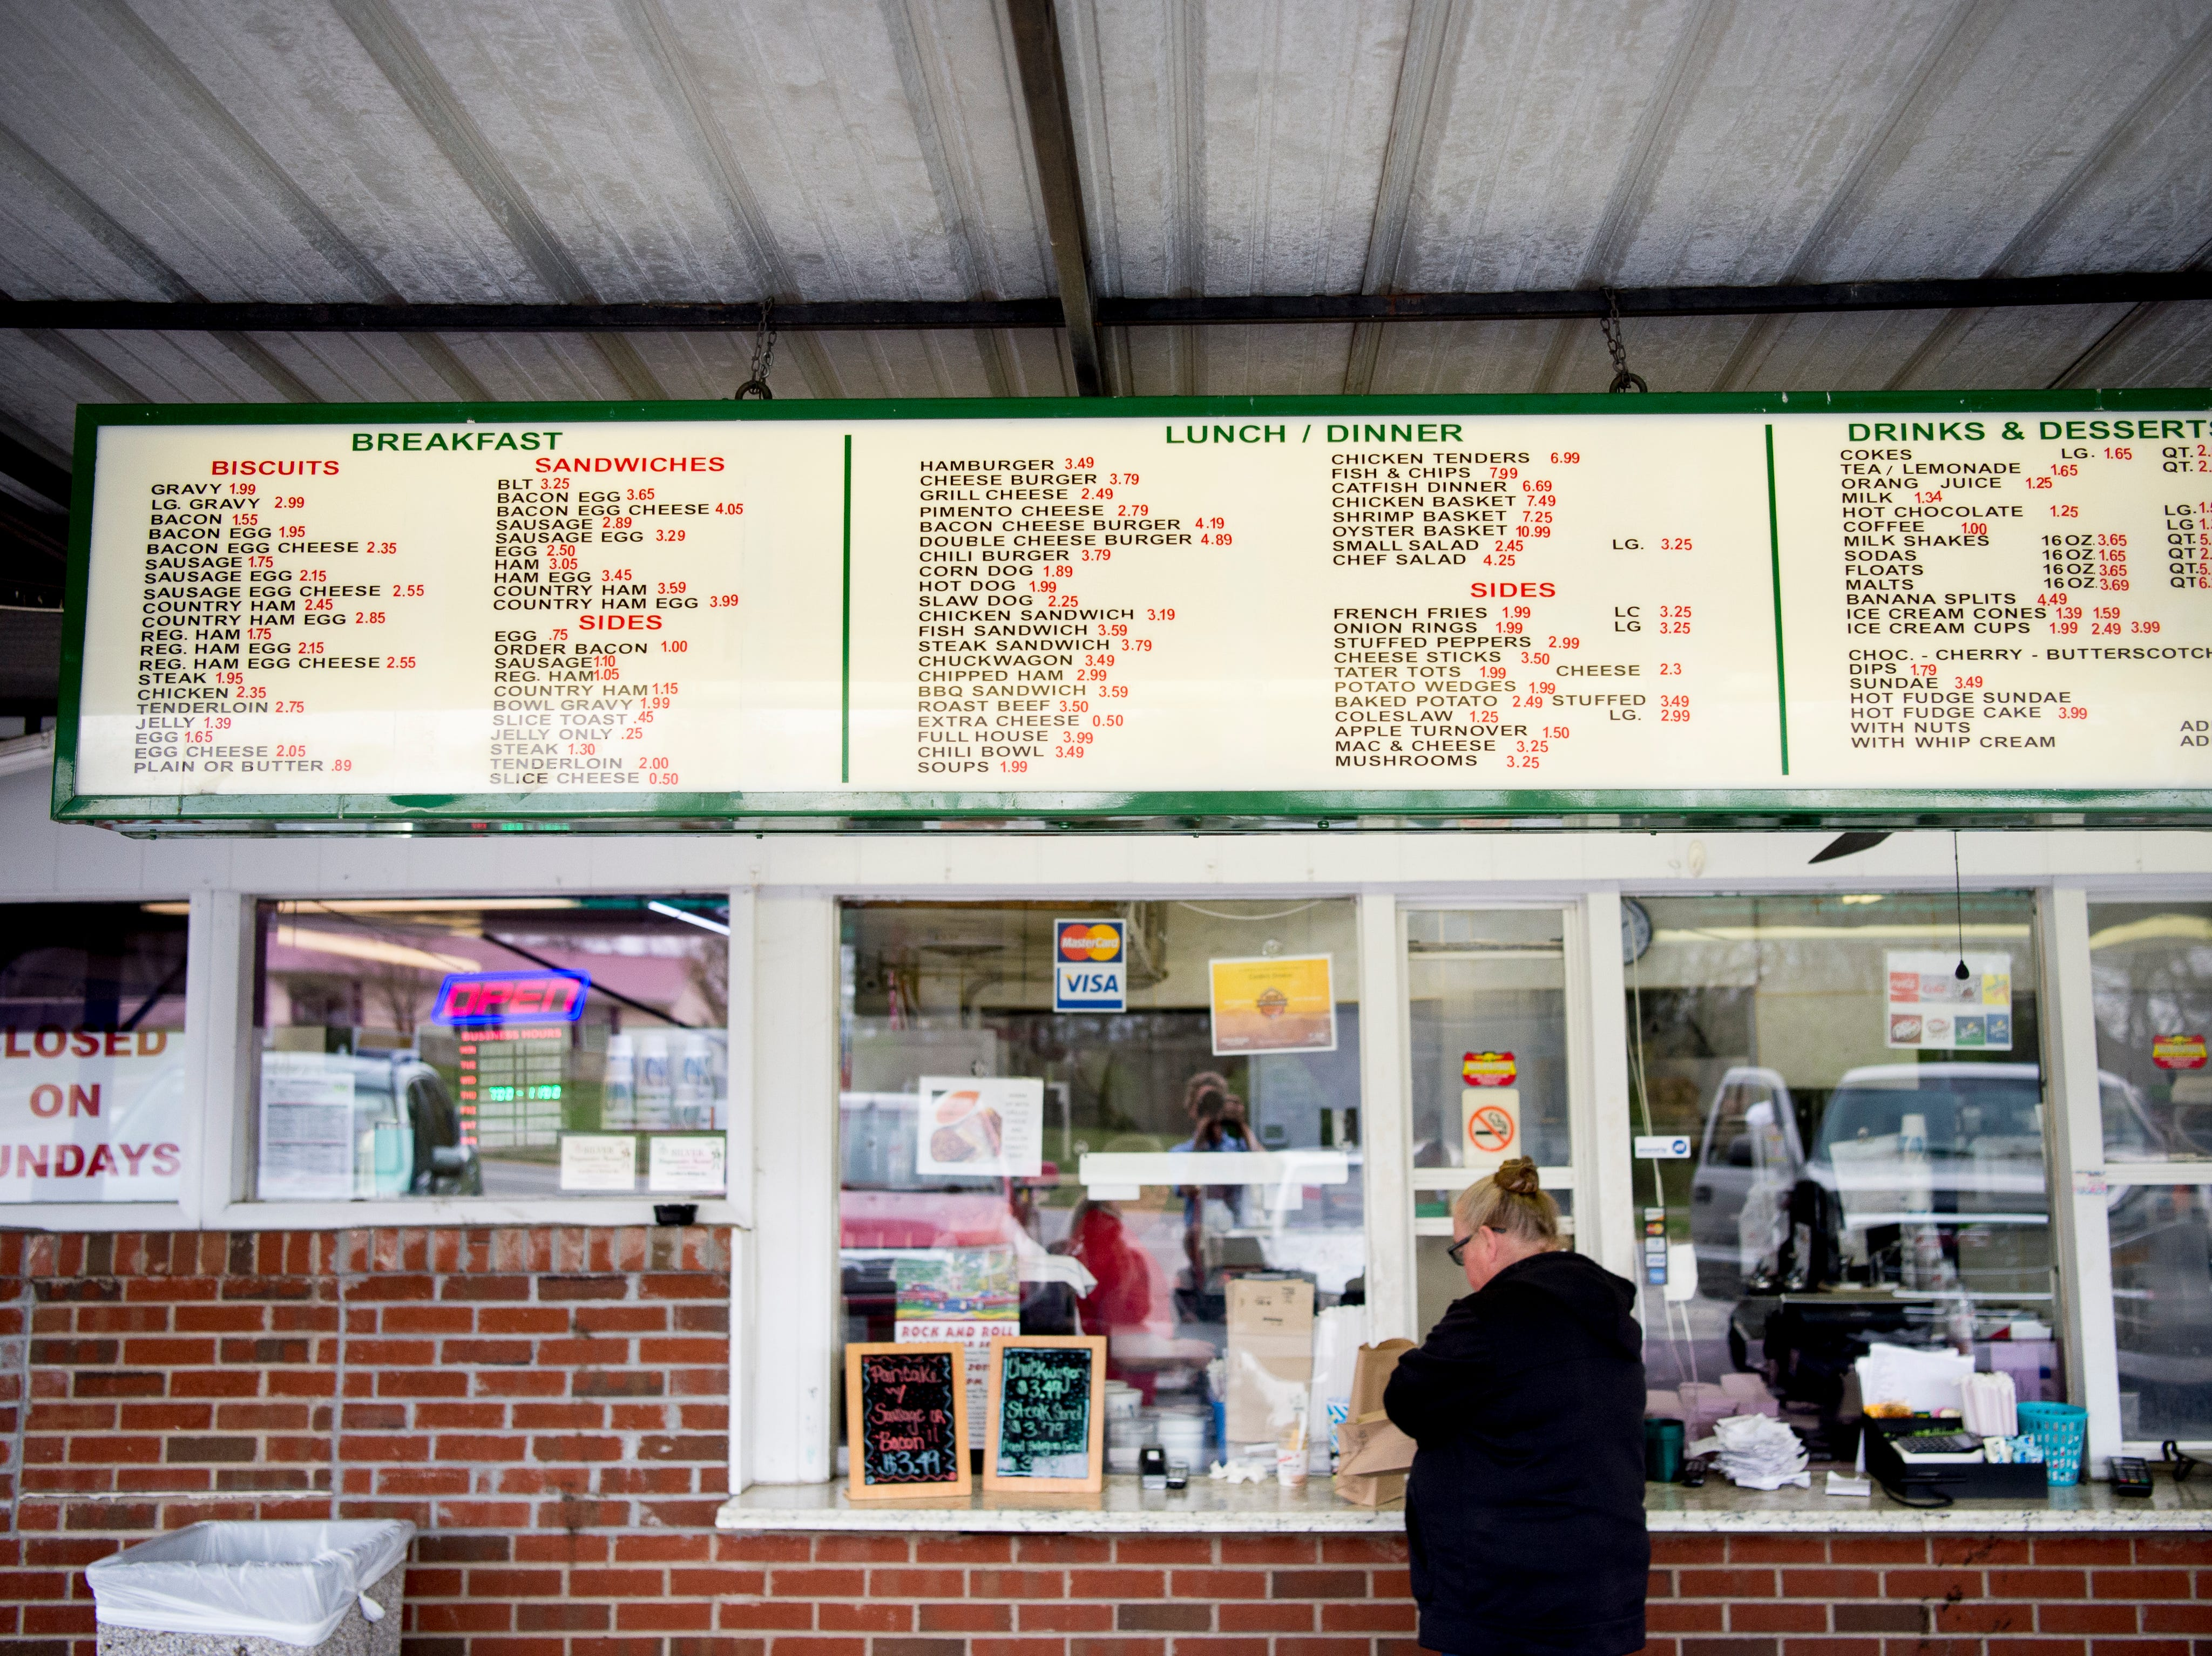 The menu above the main window at Cardin's Drive-In on Asheville Highway in Knoxville, Tennessee on Friday, April 5, 2019. The popular drive-in is celebrating 60 years of business this Saturday with sixty cent ice cream cones.